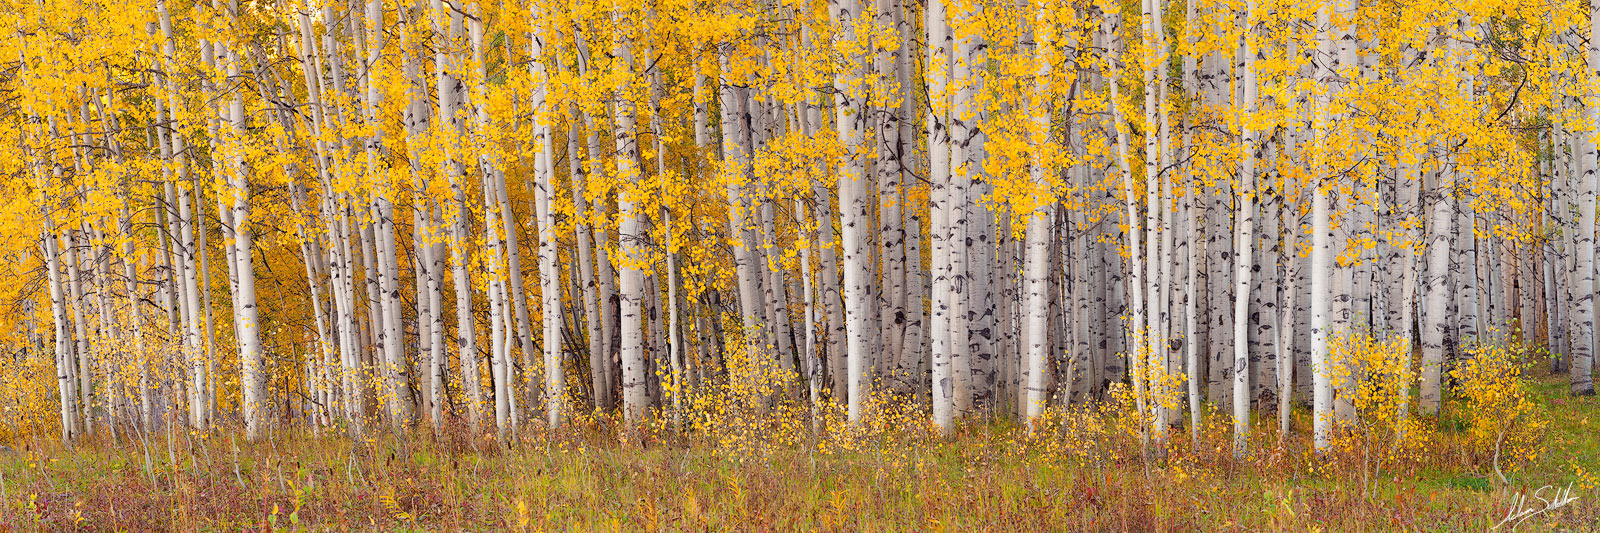 2010, Aspen Trees, Aspens, Autumn, Colorado, Fall, Fall Color, Kebler Pass, Yellow, photo